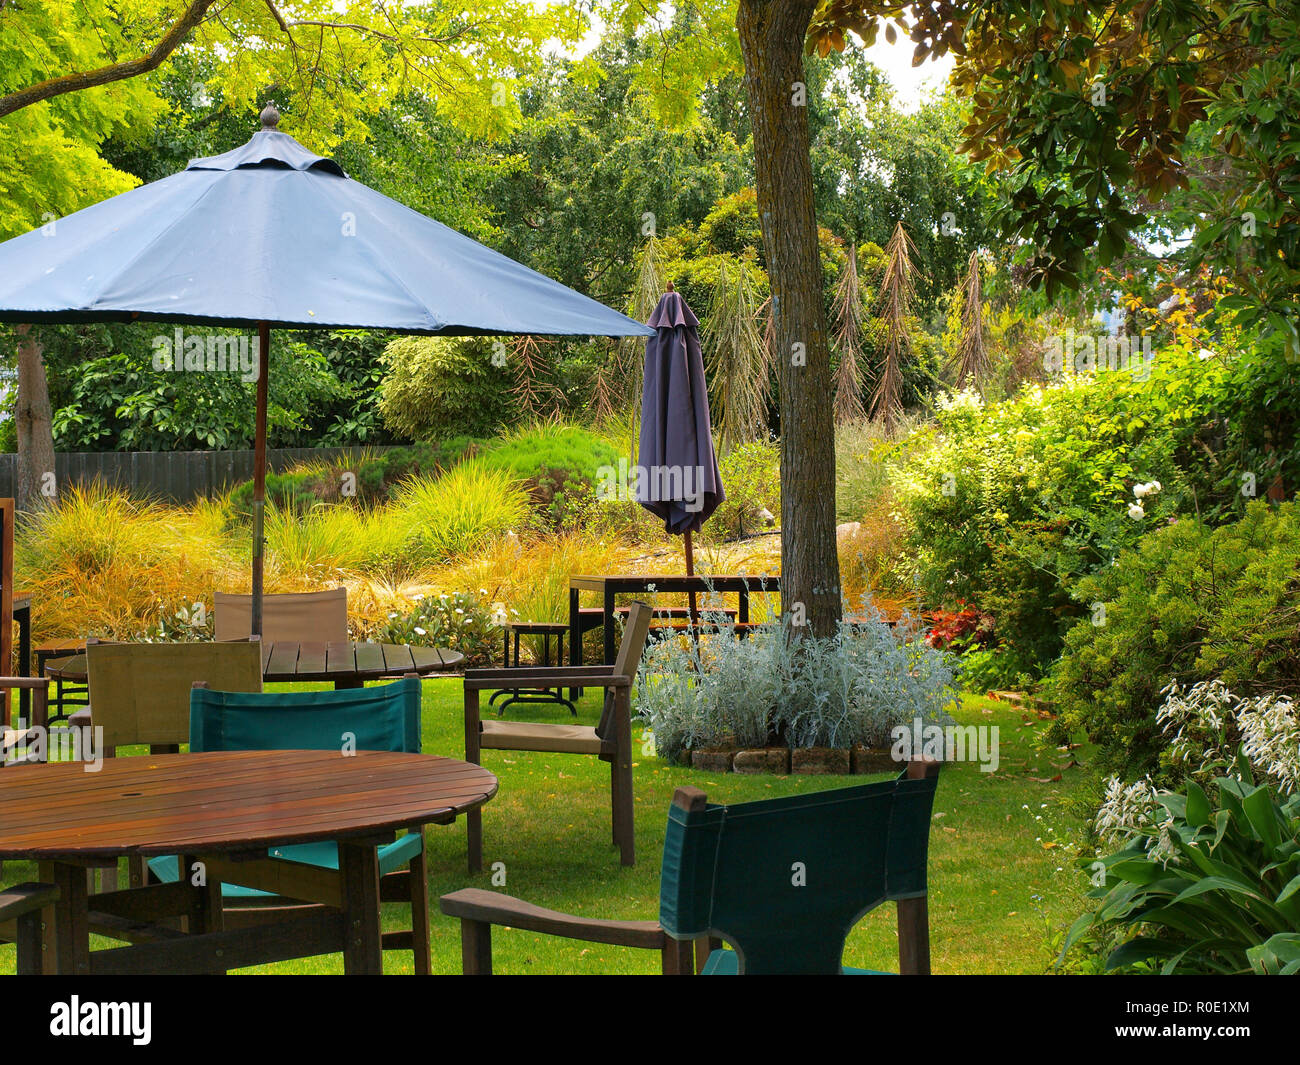 Dining Table In Sunny Garden Patio With Sunshade Stock Photo ...